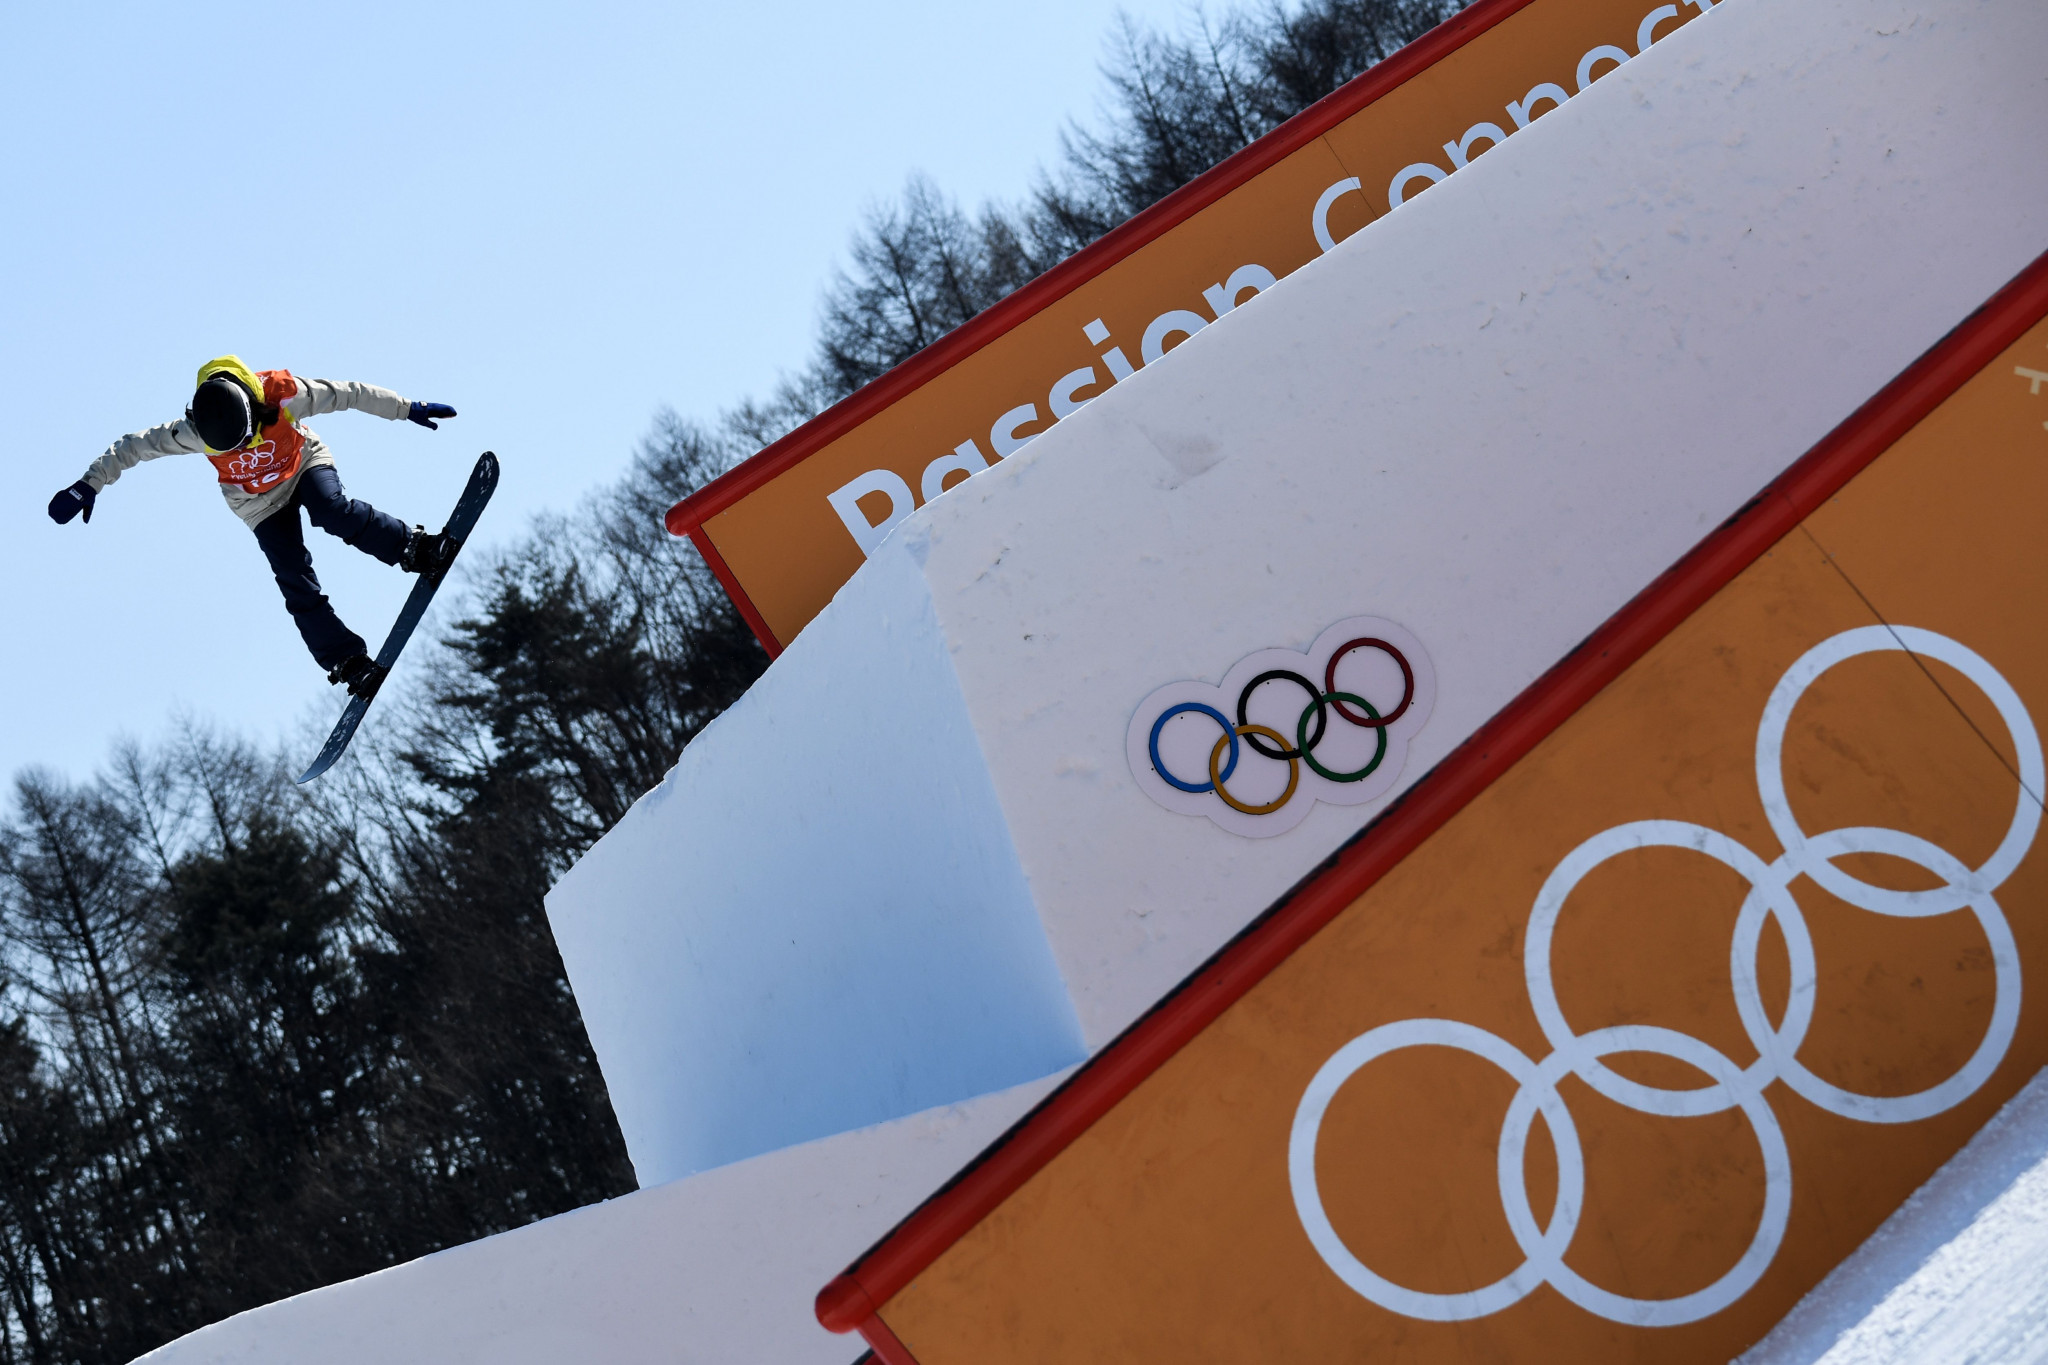 British snowboarder Ormerod encouraged by Beijing 2022's push for green Olympics